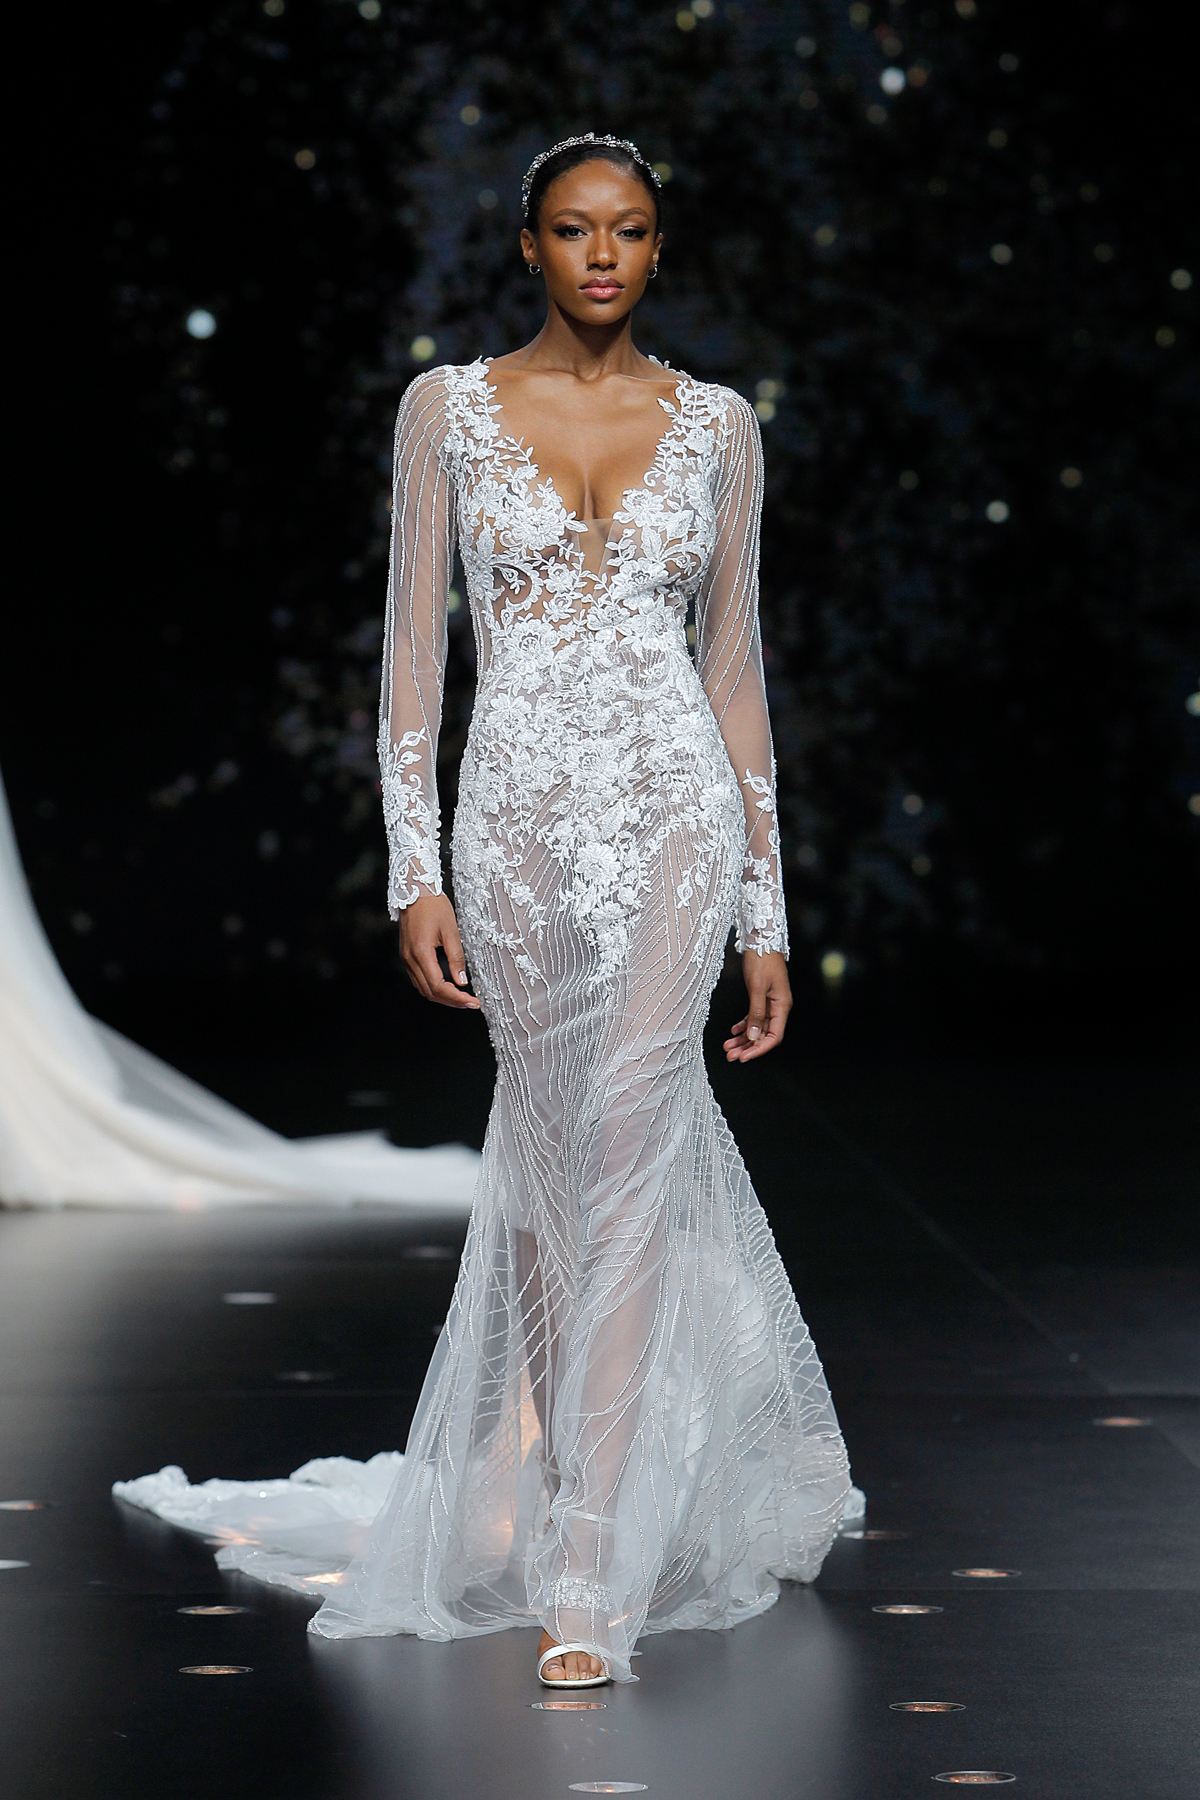 pronovias sheer lace long sleeve wedding dress with train spring 2020